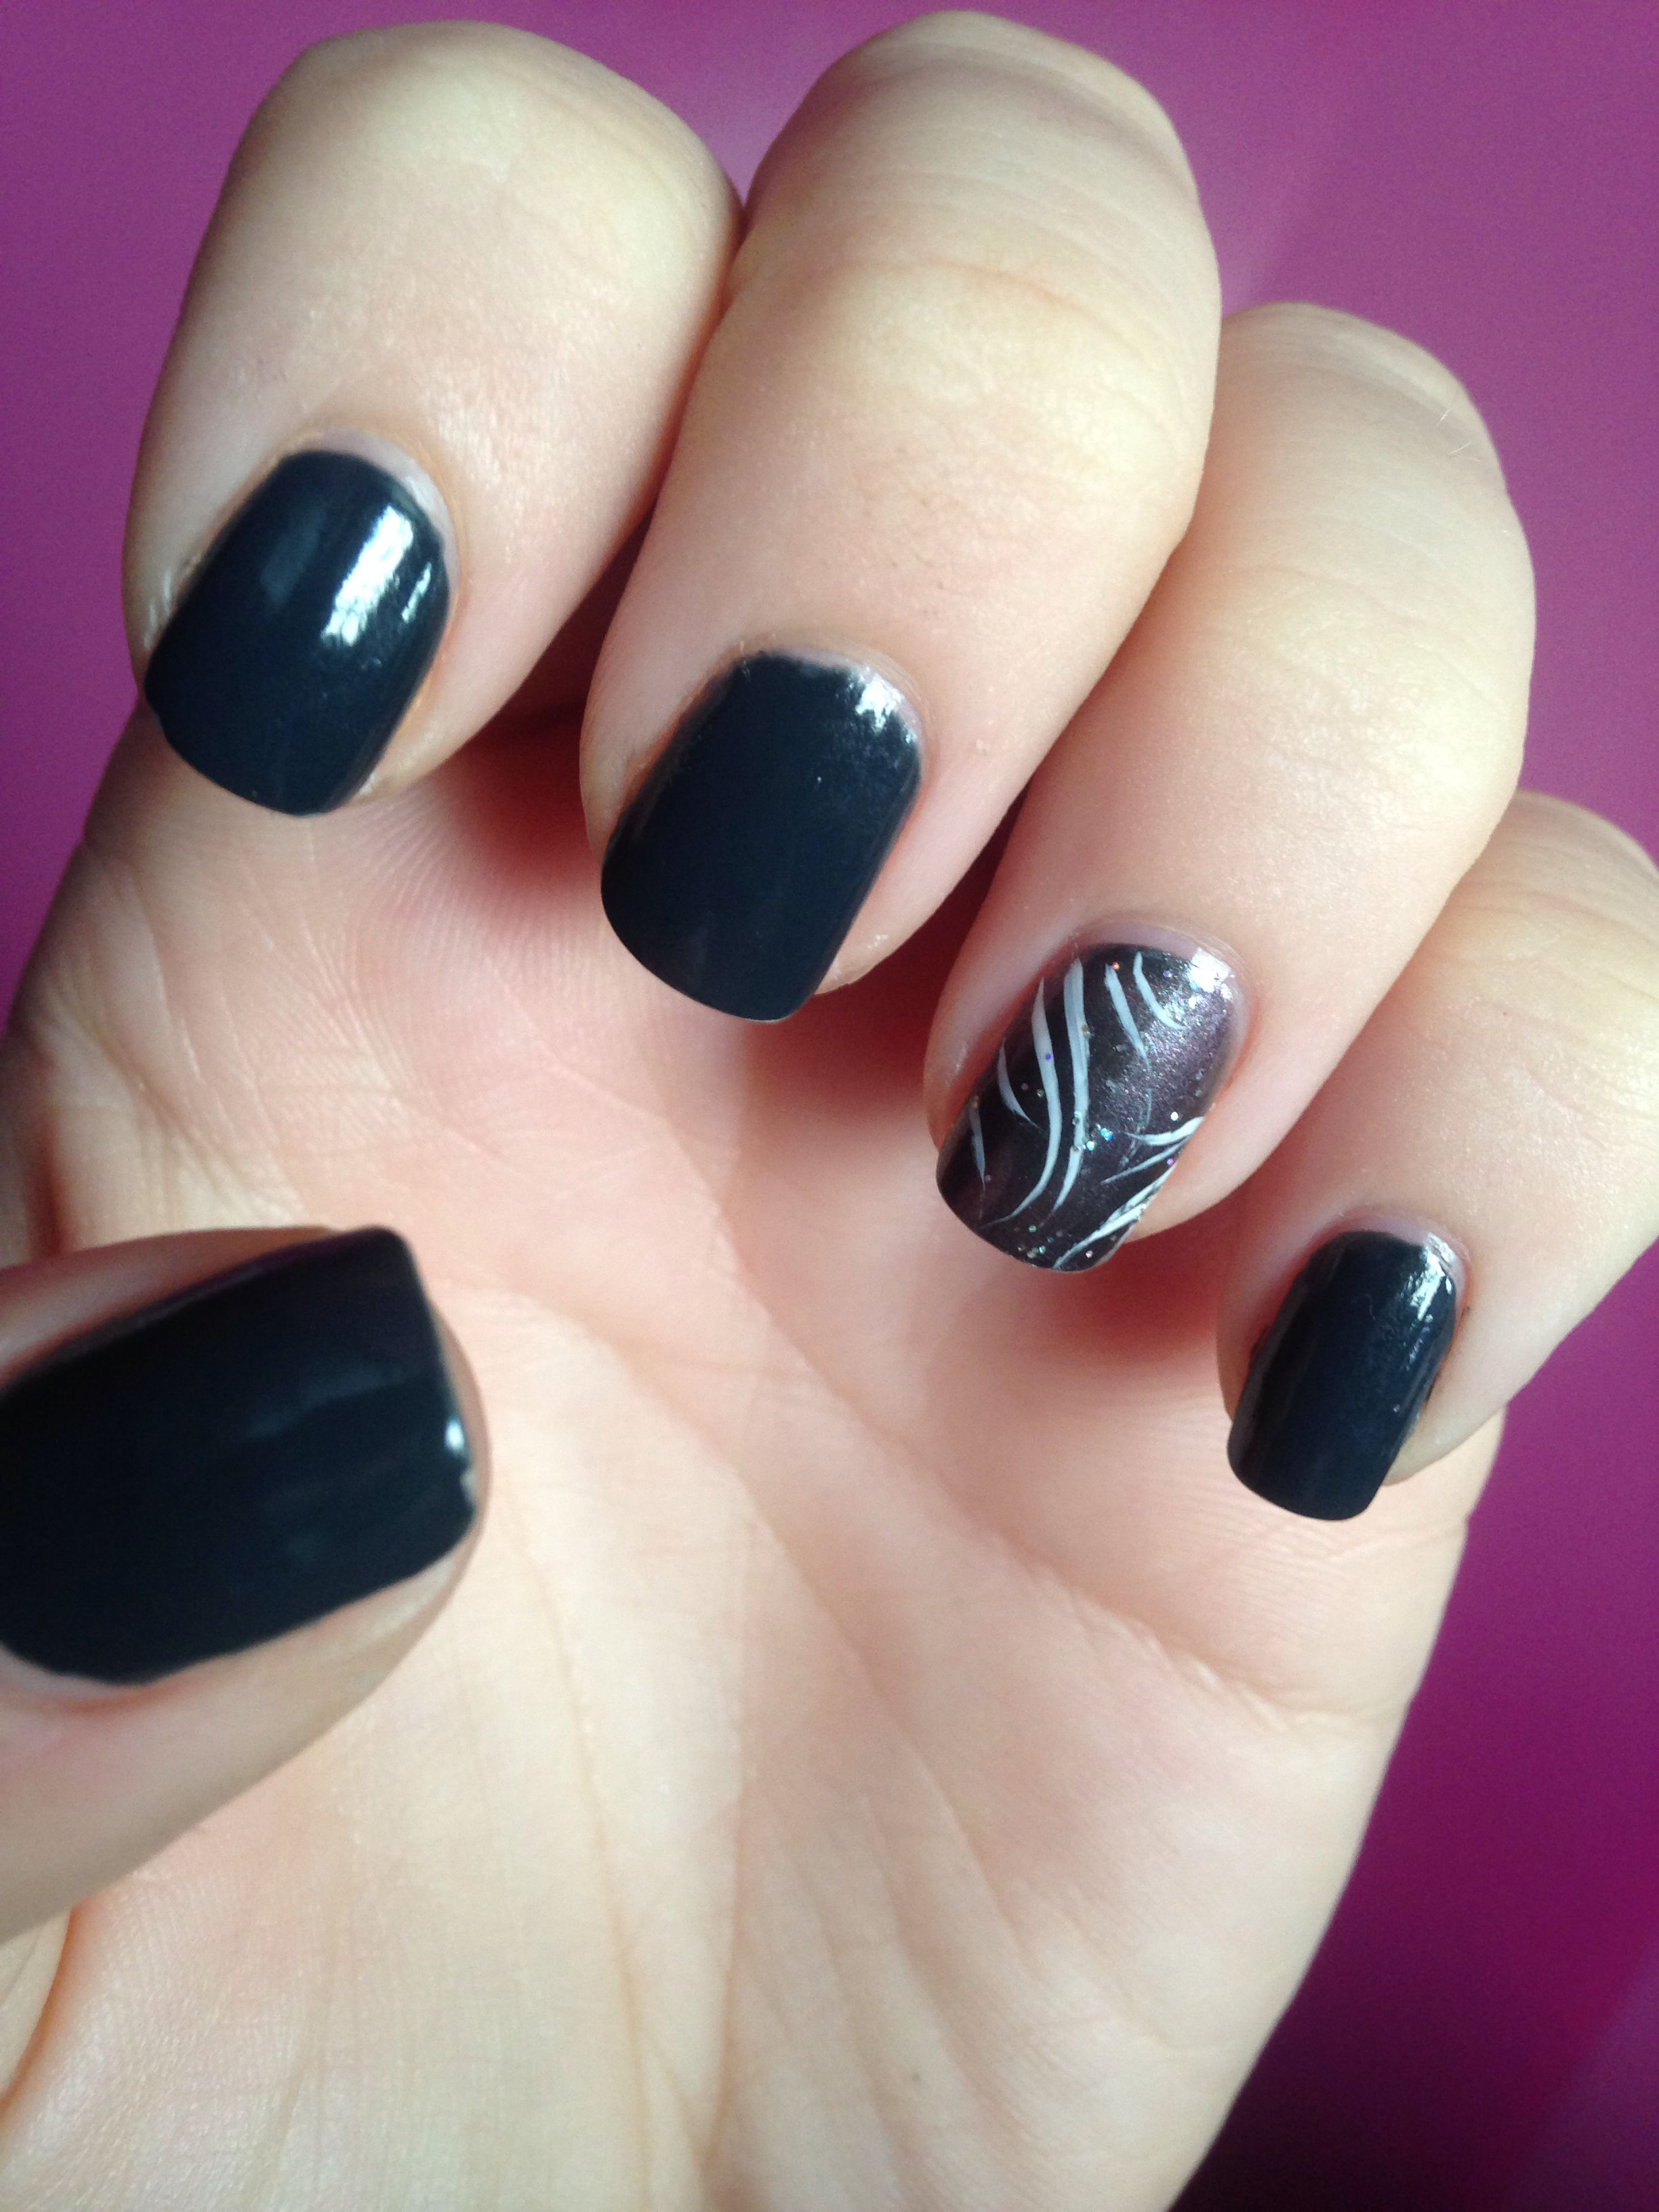 Tattoo background shading ideas color pin by nicolelynn marcucci on beauty   pinterest  nails and nail